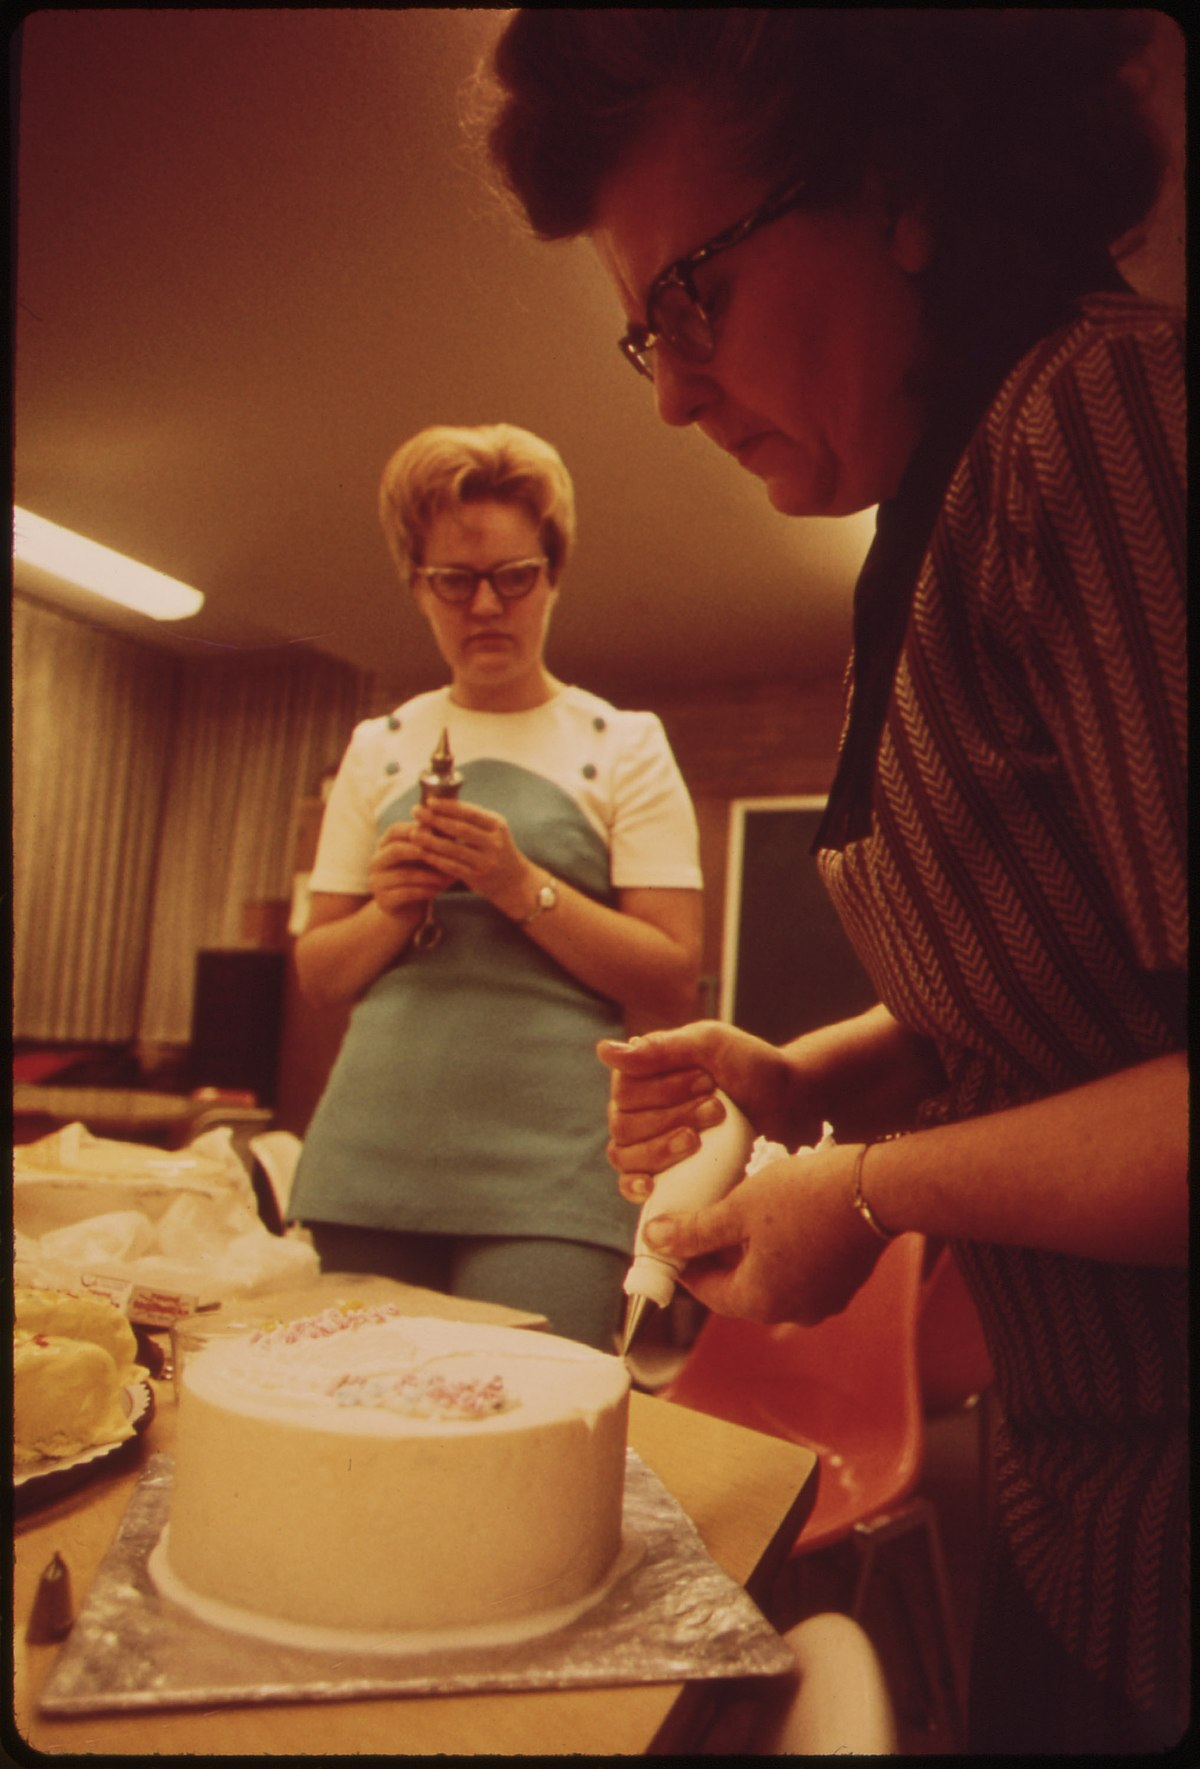 File:Cake Decorating Class, Part of Continuing Education ...